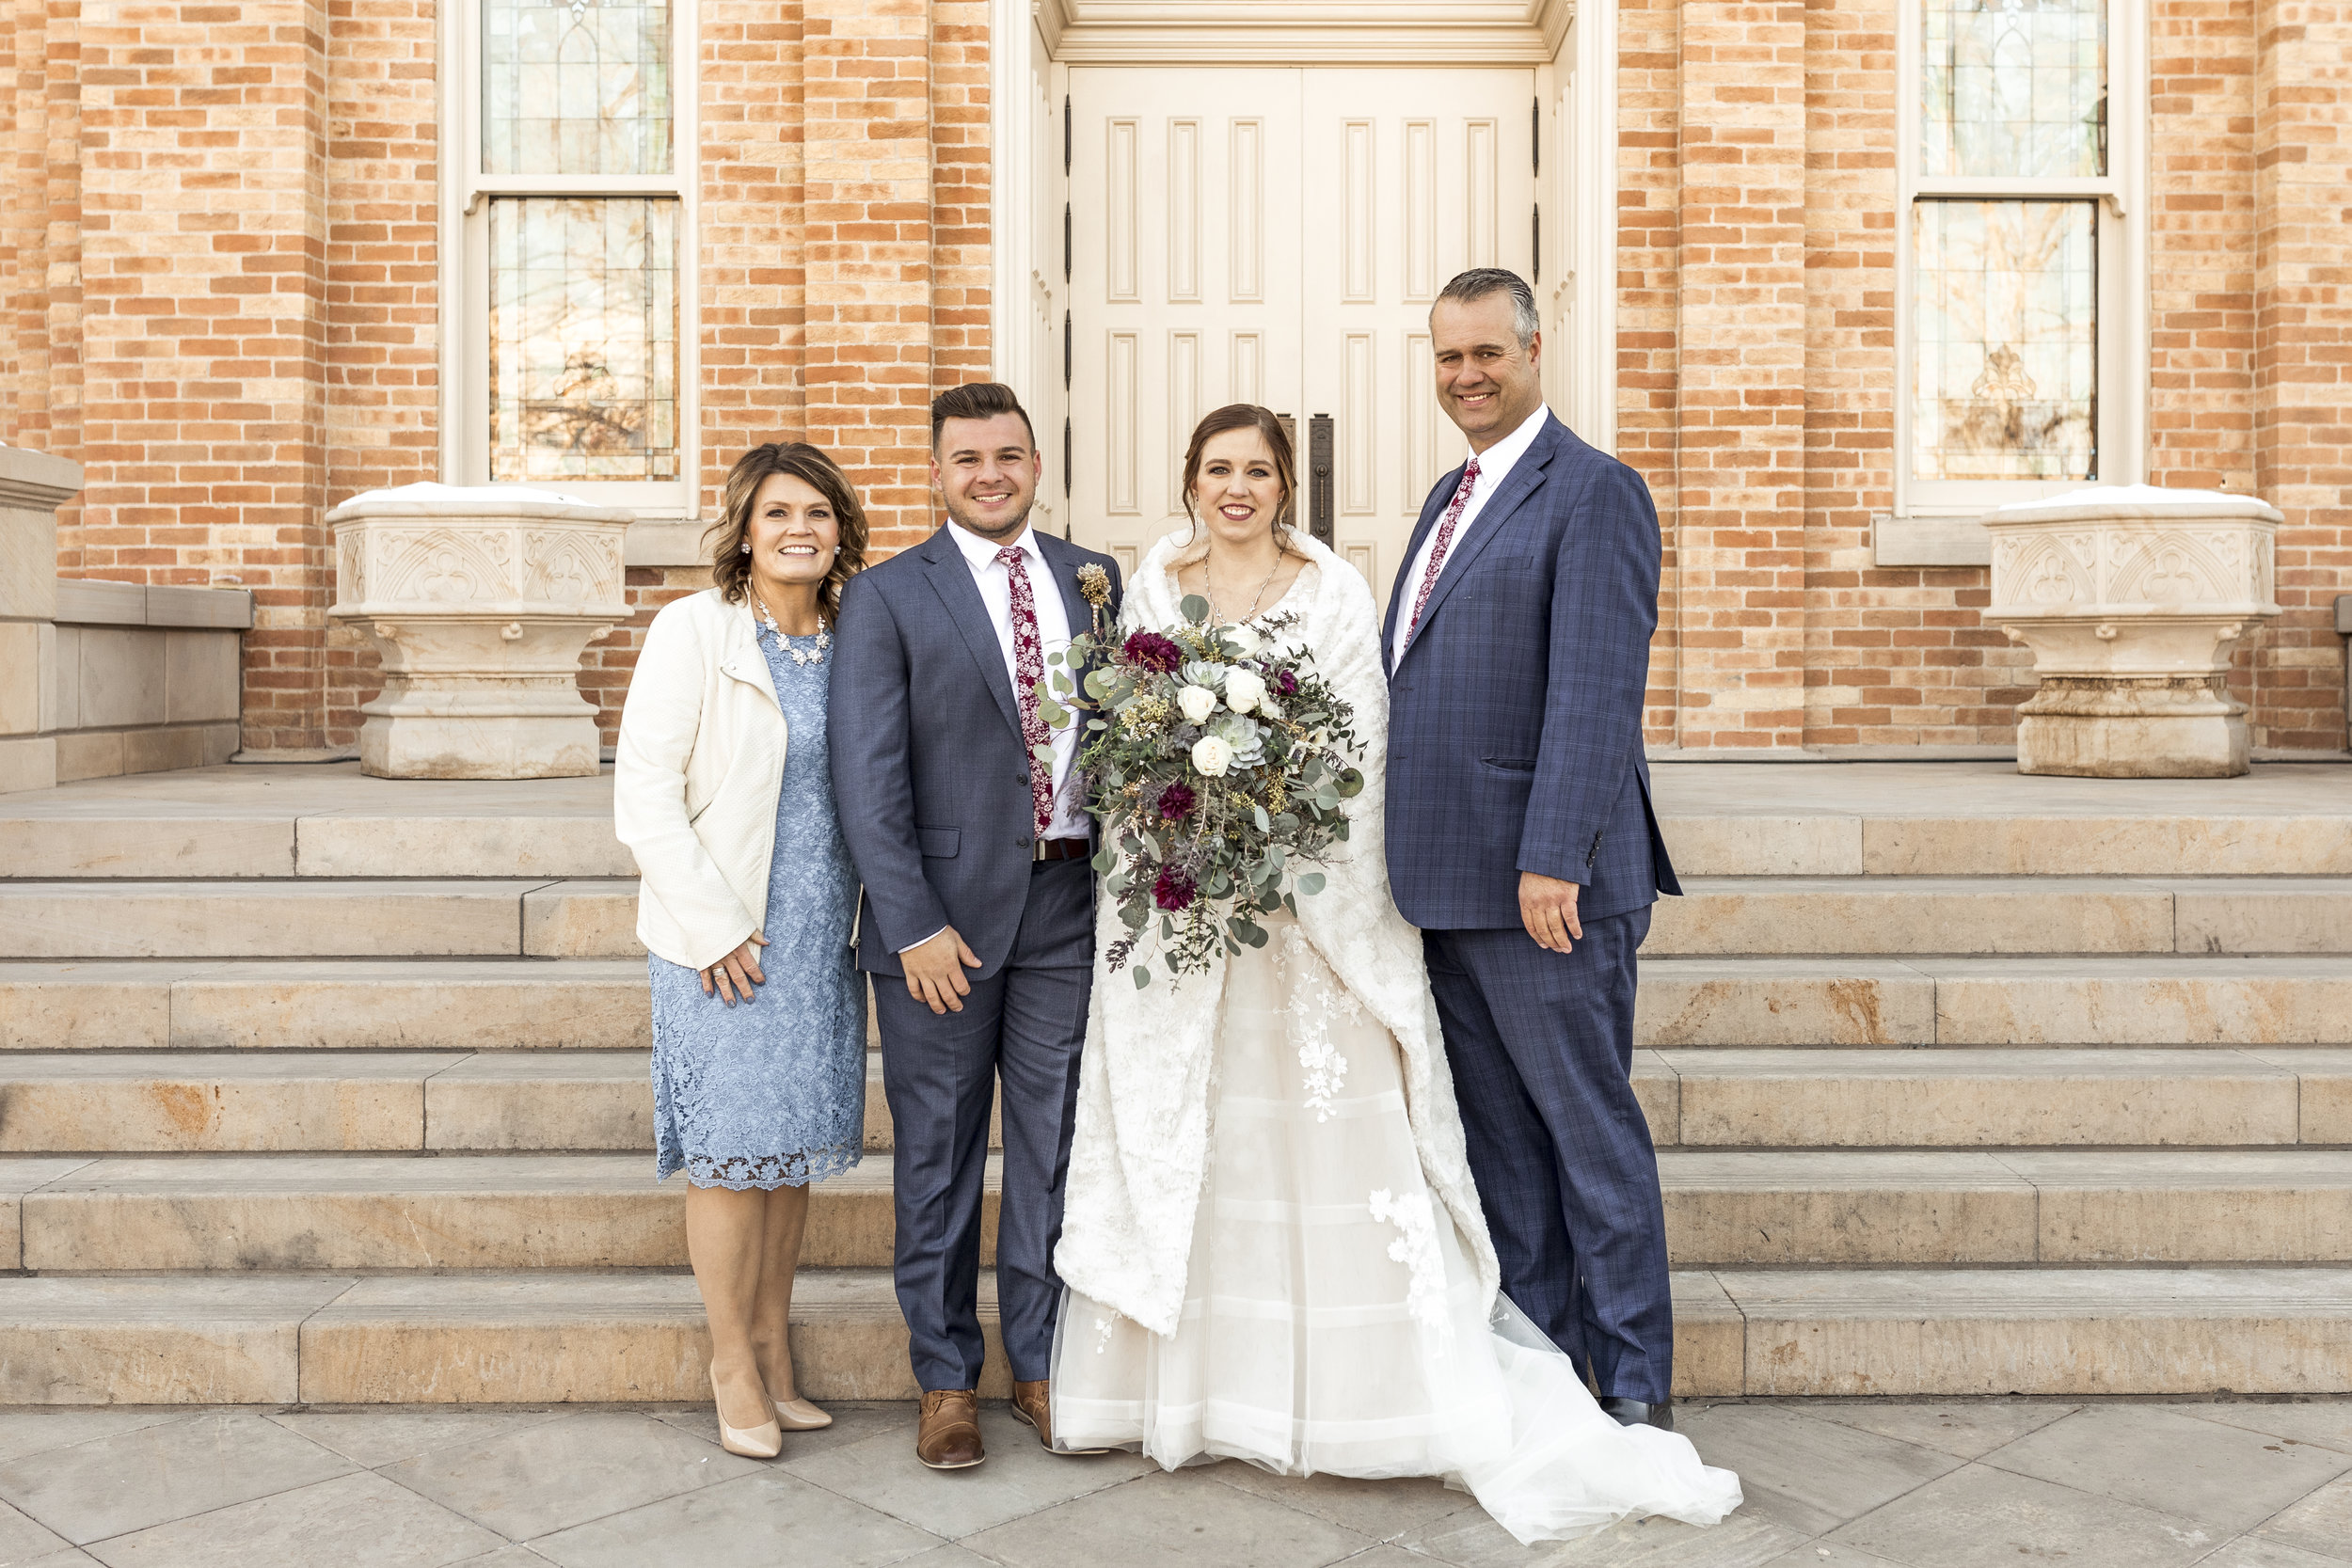 Skyler + Austin | Provo City Center Temple Wedding | Bri Bergman Photography 049.JPG